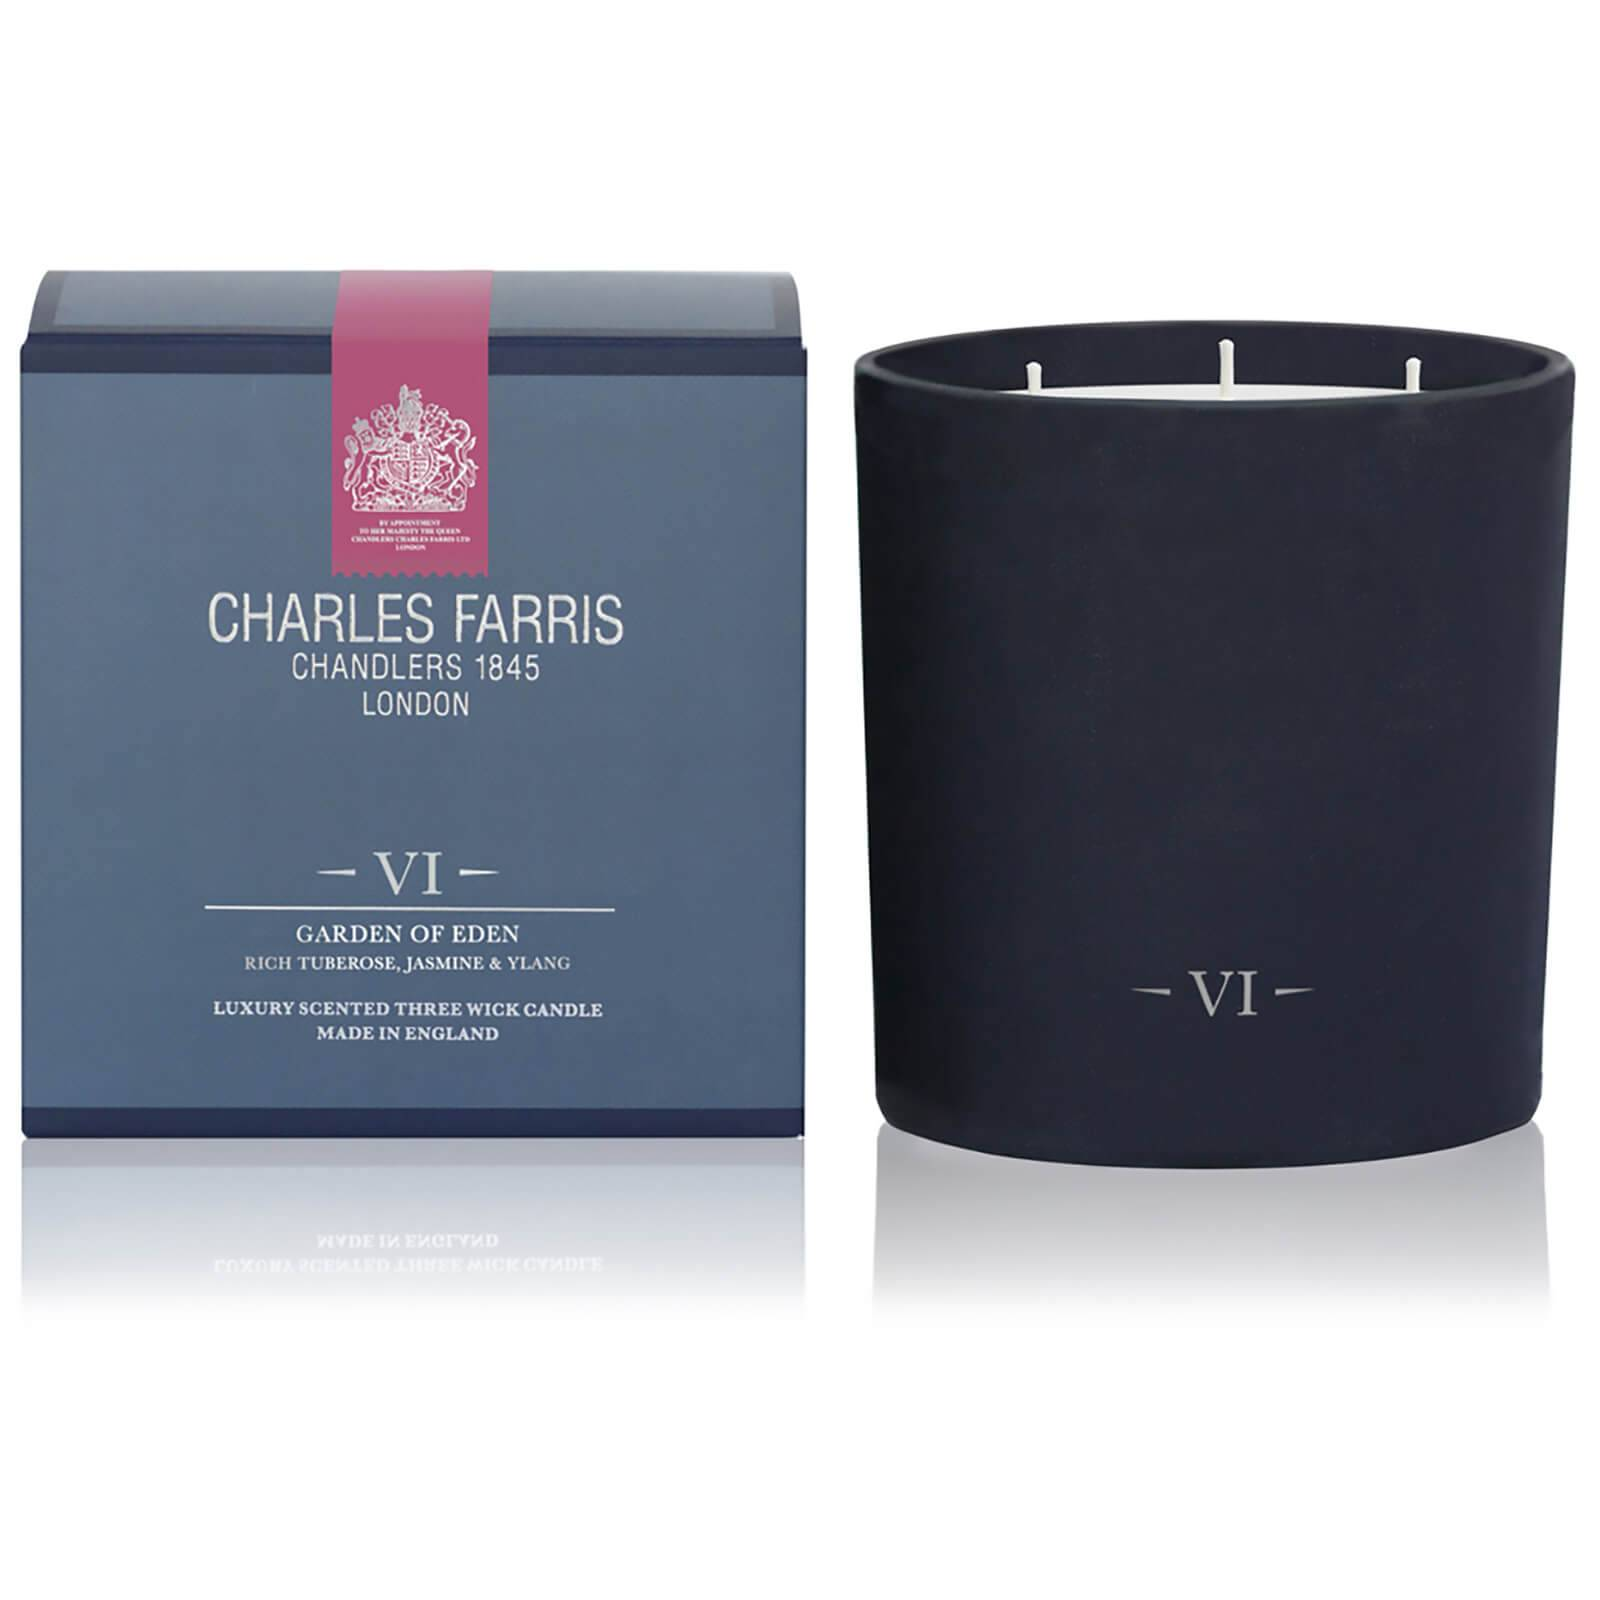 Charles Farris Signature Garden of Eden 3 Wick Candle 1475g